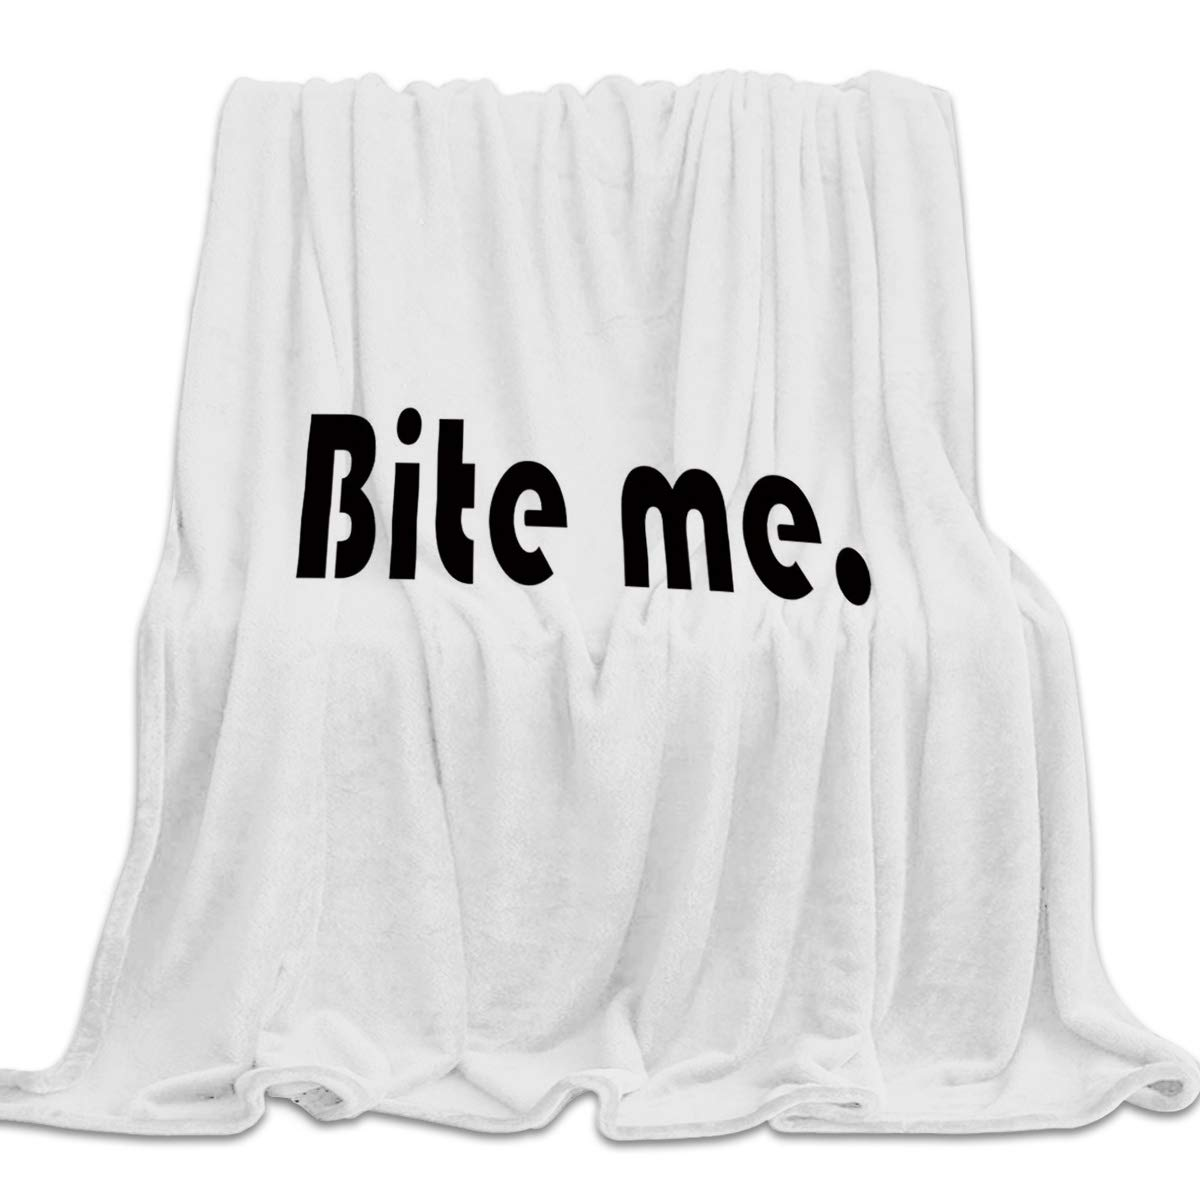 Bite Me1yag9071 39x49inch=100x125cm 39x49 Inch Flannel Fleece Bed Blanket Soft Throw-Blankets for Girls Boys,Simple Circle Dot Pattern Black and White,Lightweight Warm Kids Blankets for Bedroom Living Room Sofa Couch Home Decor